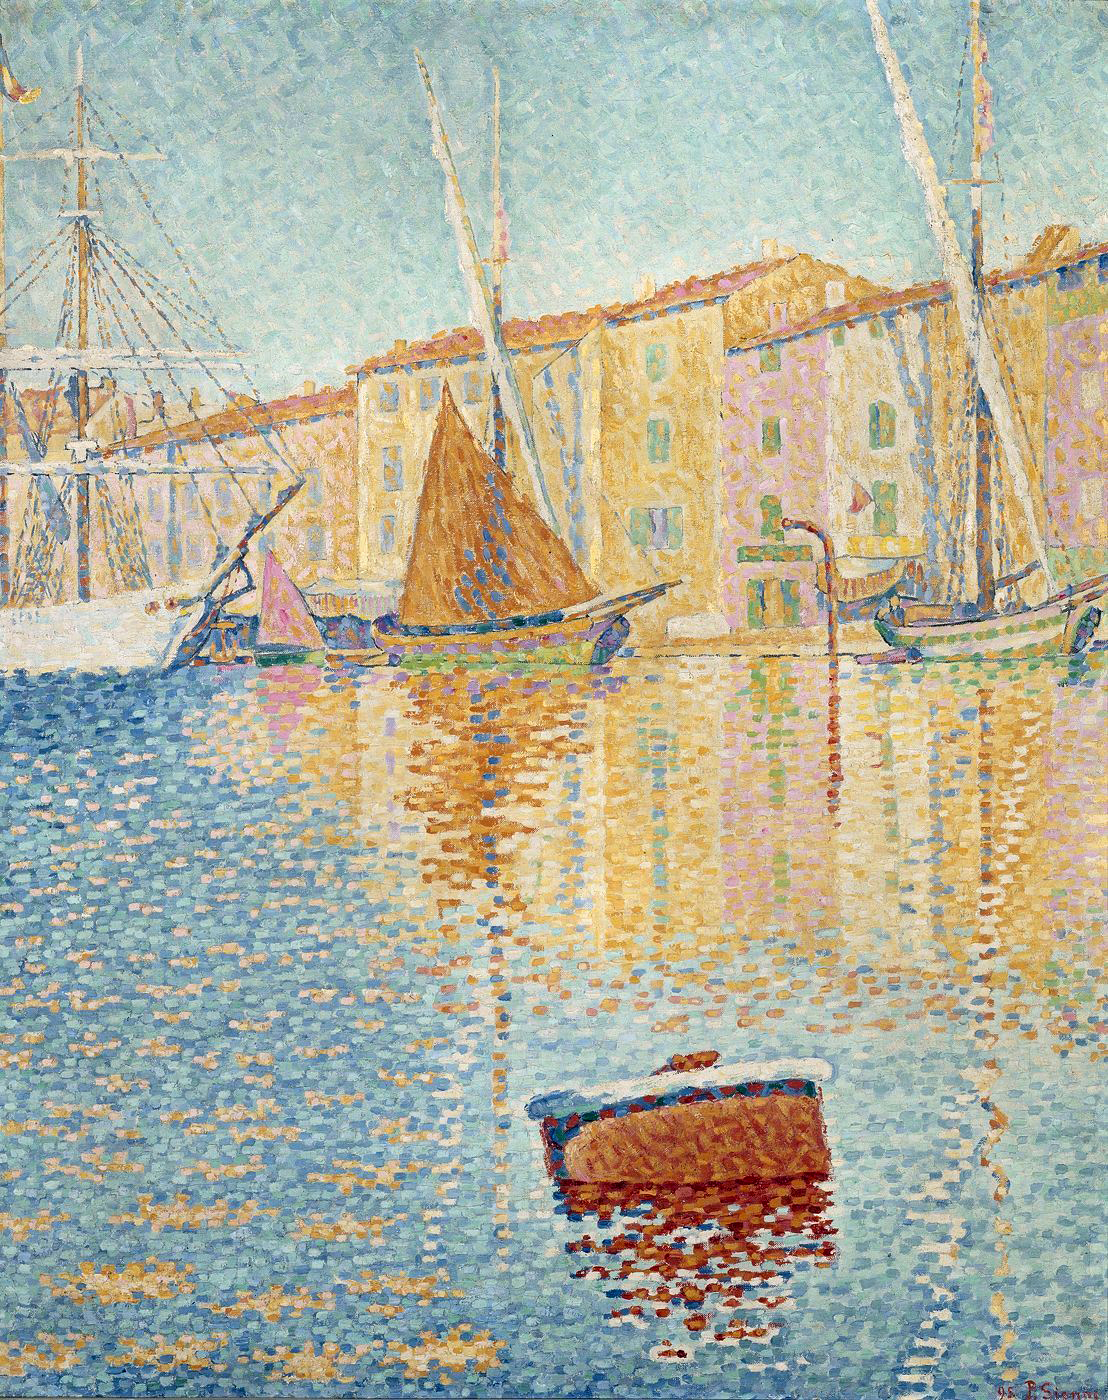 File:Paul Signac La bouee rouge.jpg